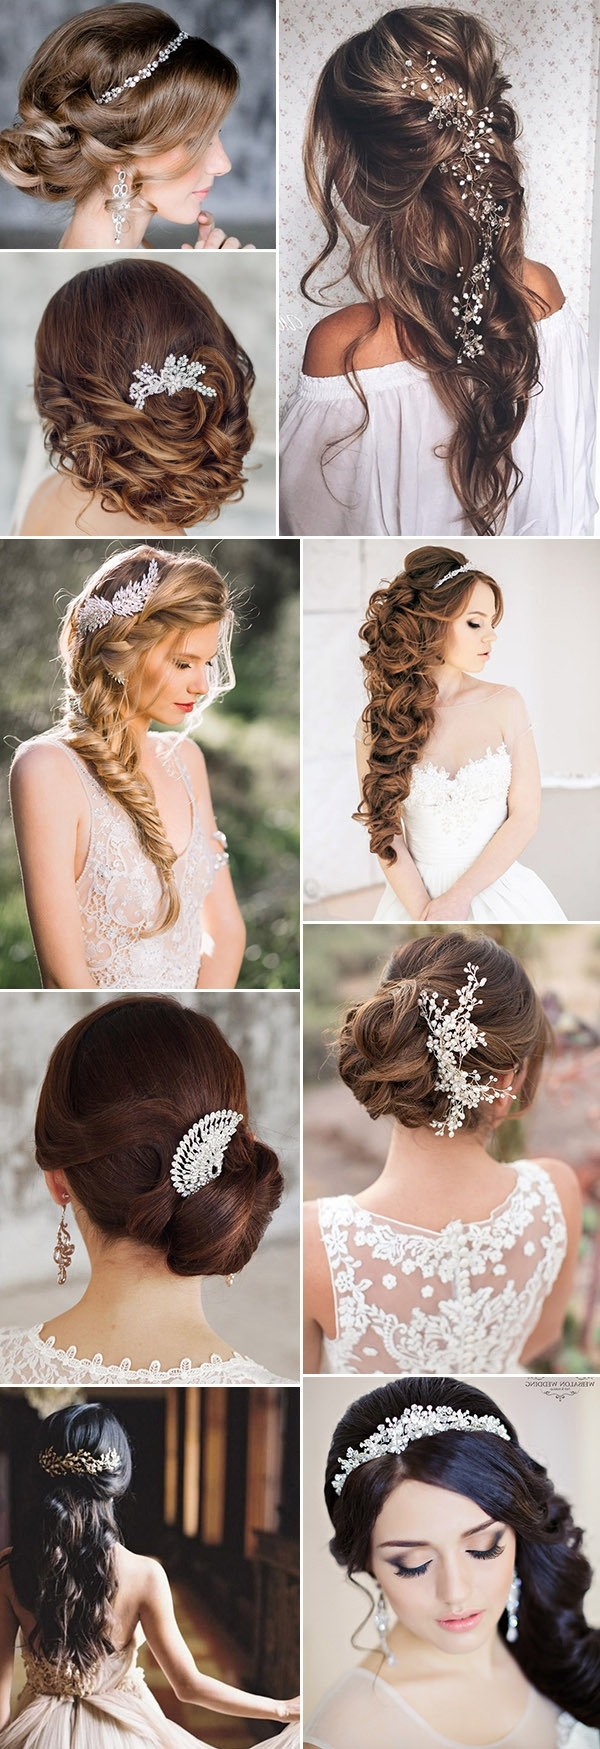 Current Wedding Hairstyles With Hair Accessories For Top 20 Bridal Headpieces For Your Wedding Hairstyles (View 4 of 15)